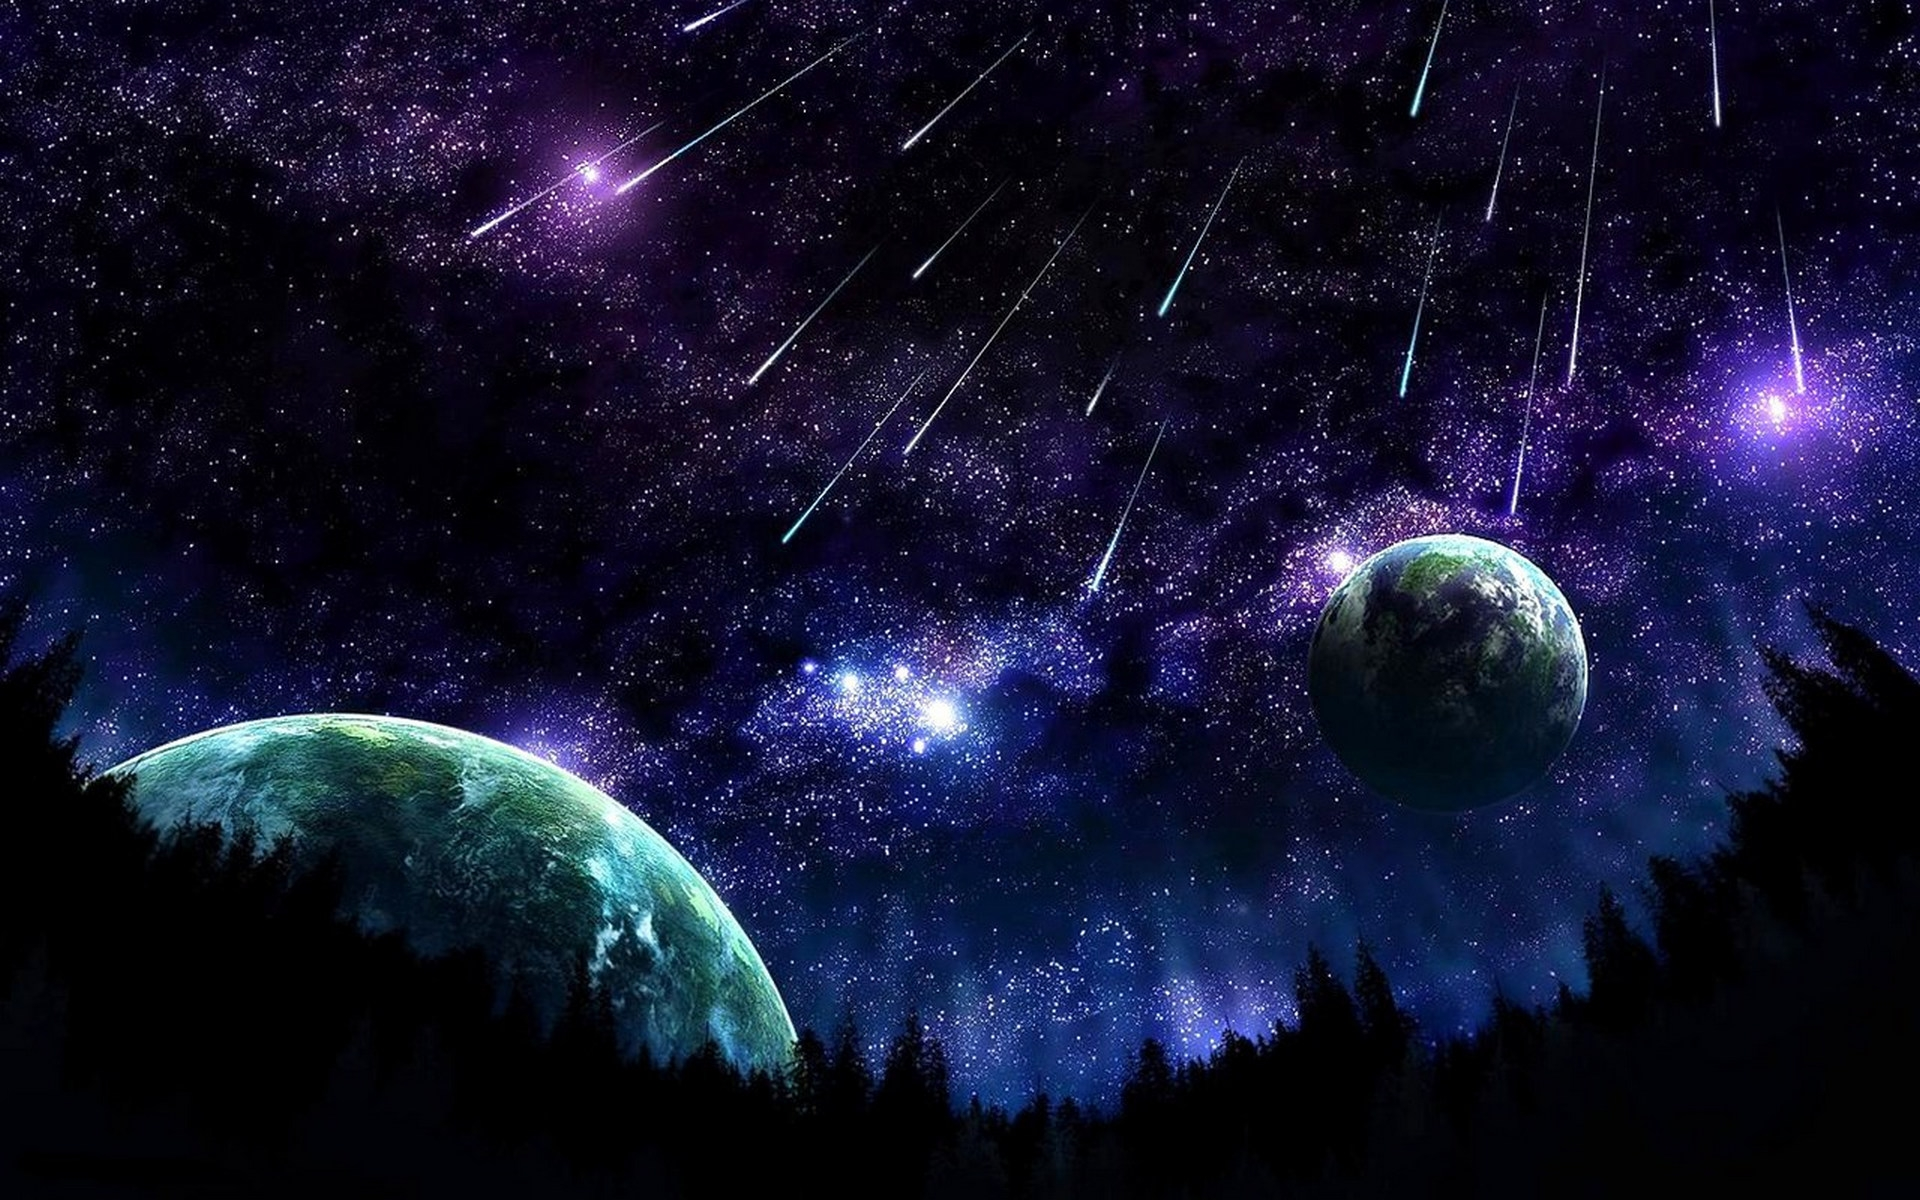 Animated Wallpapers For Pc Desktop Free Download Trippy Wallpapers